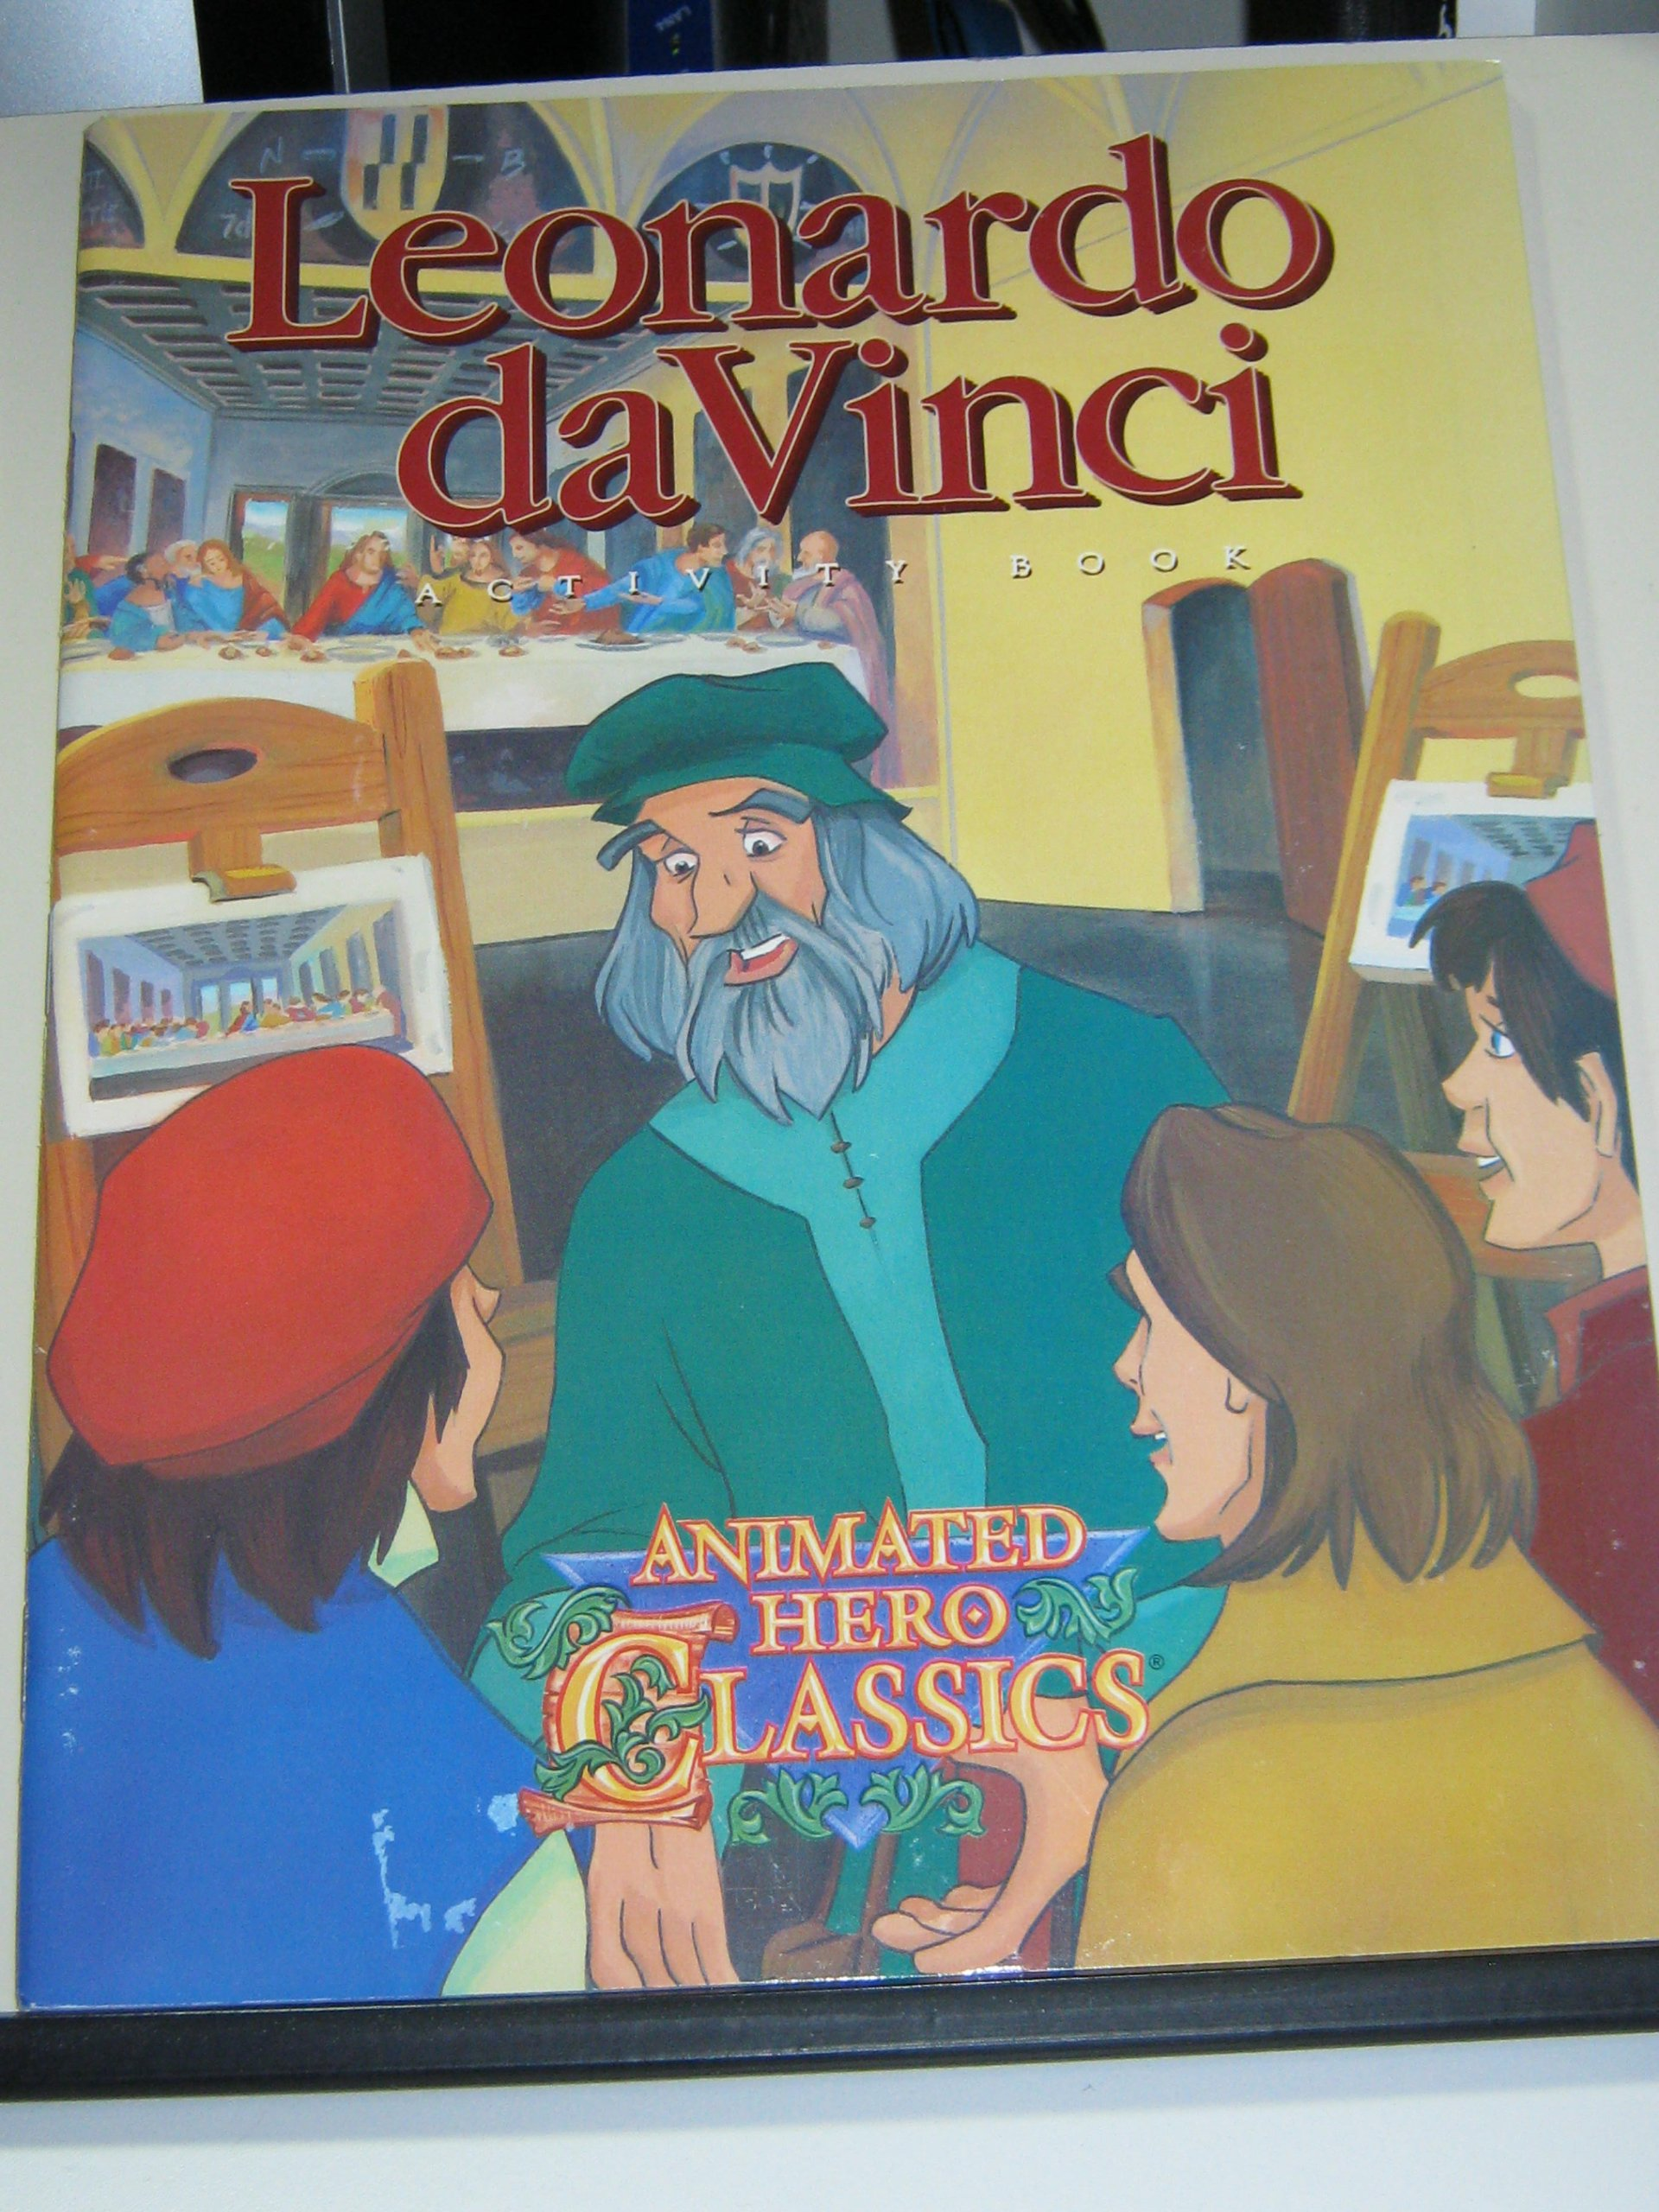 leonardo da vinci activity book animated hero classics